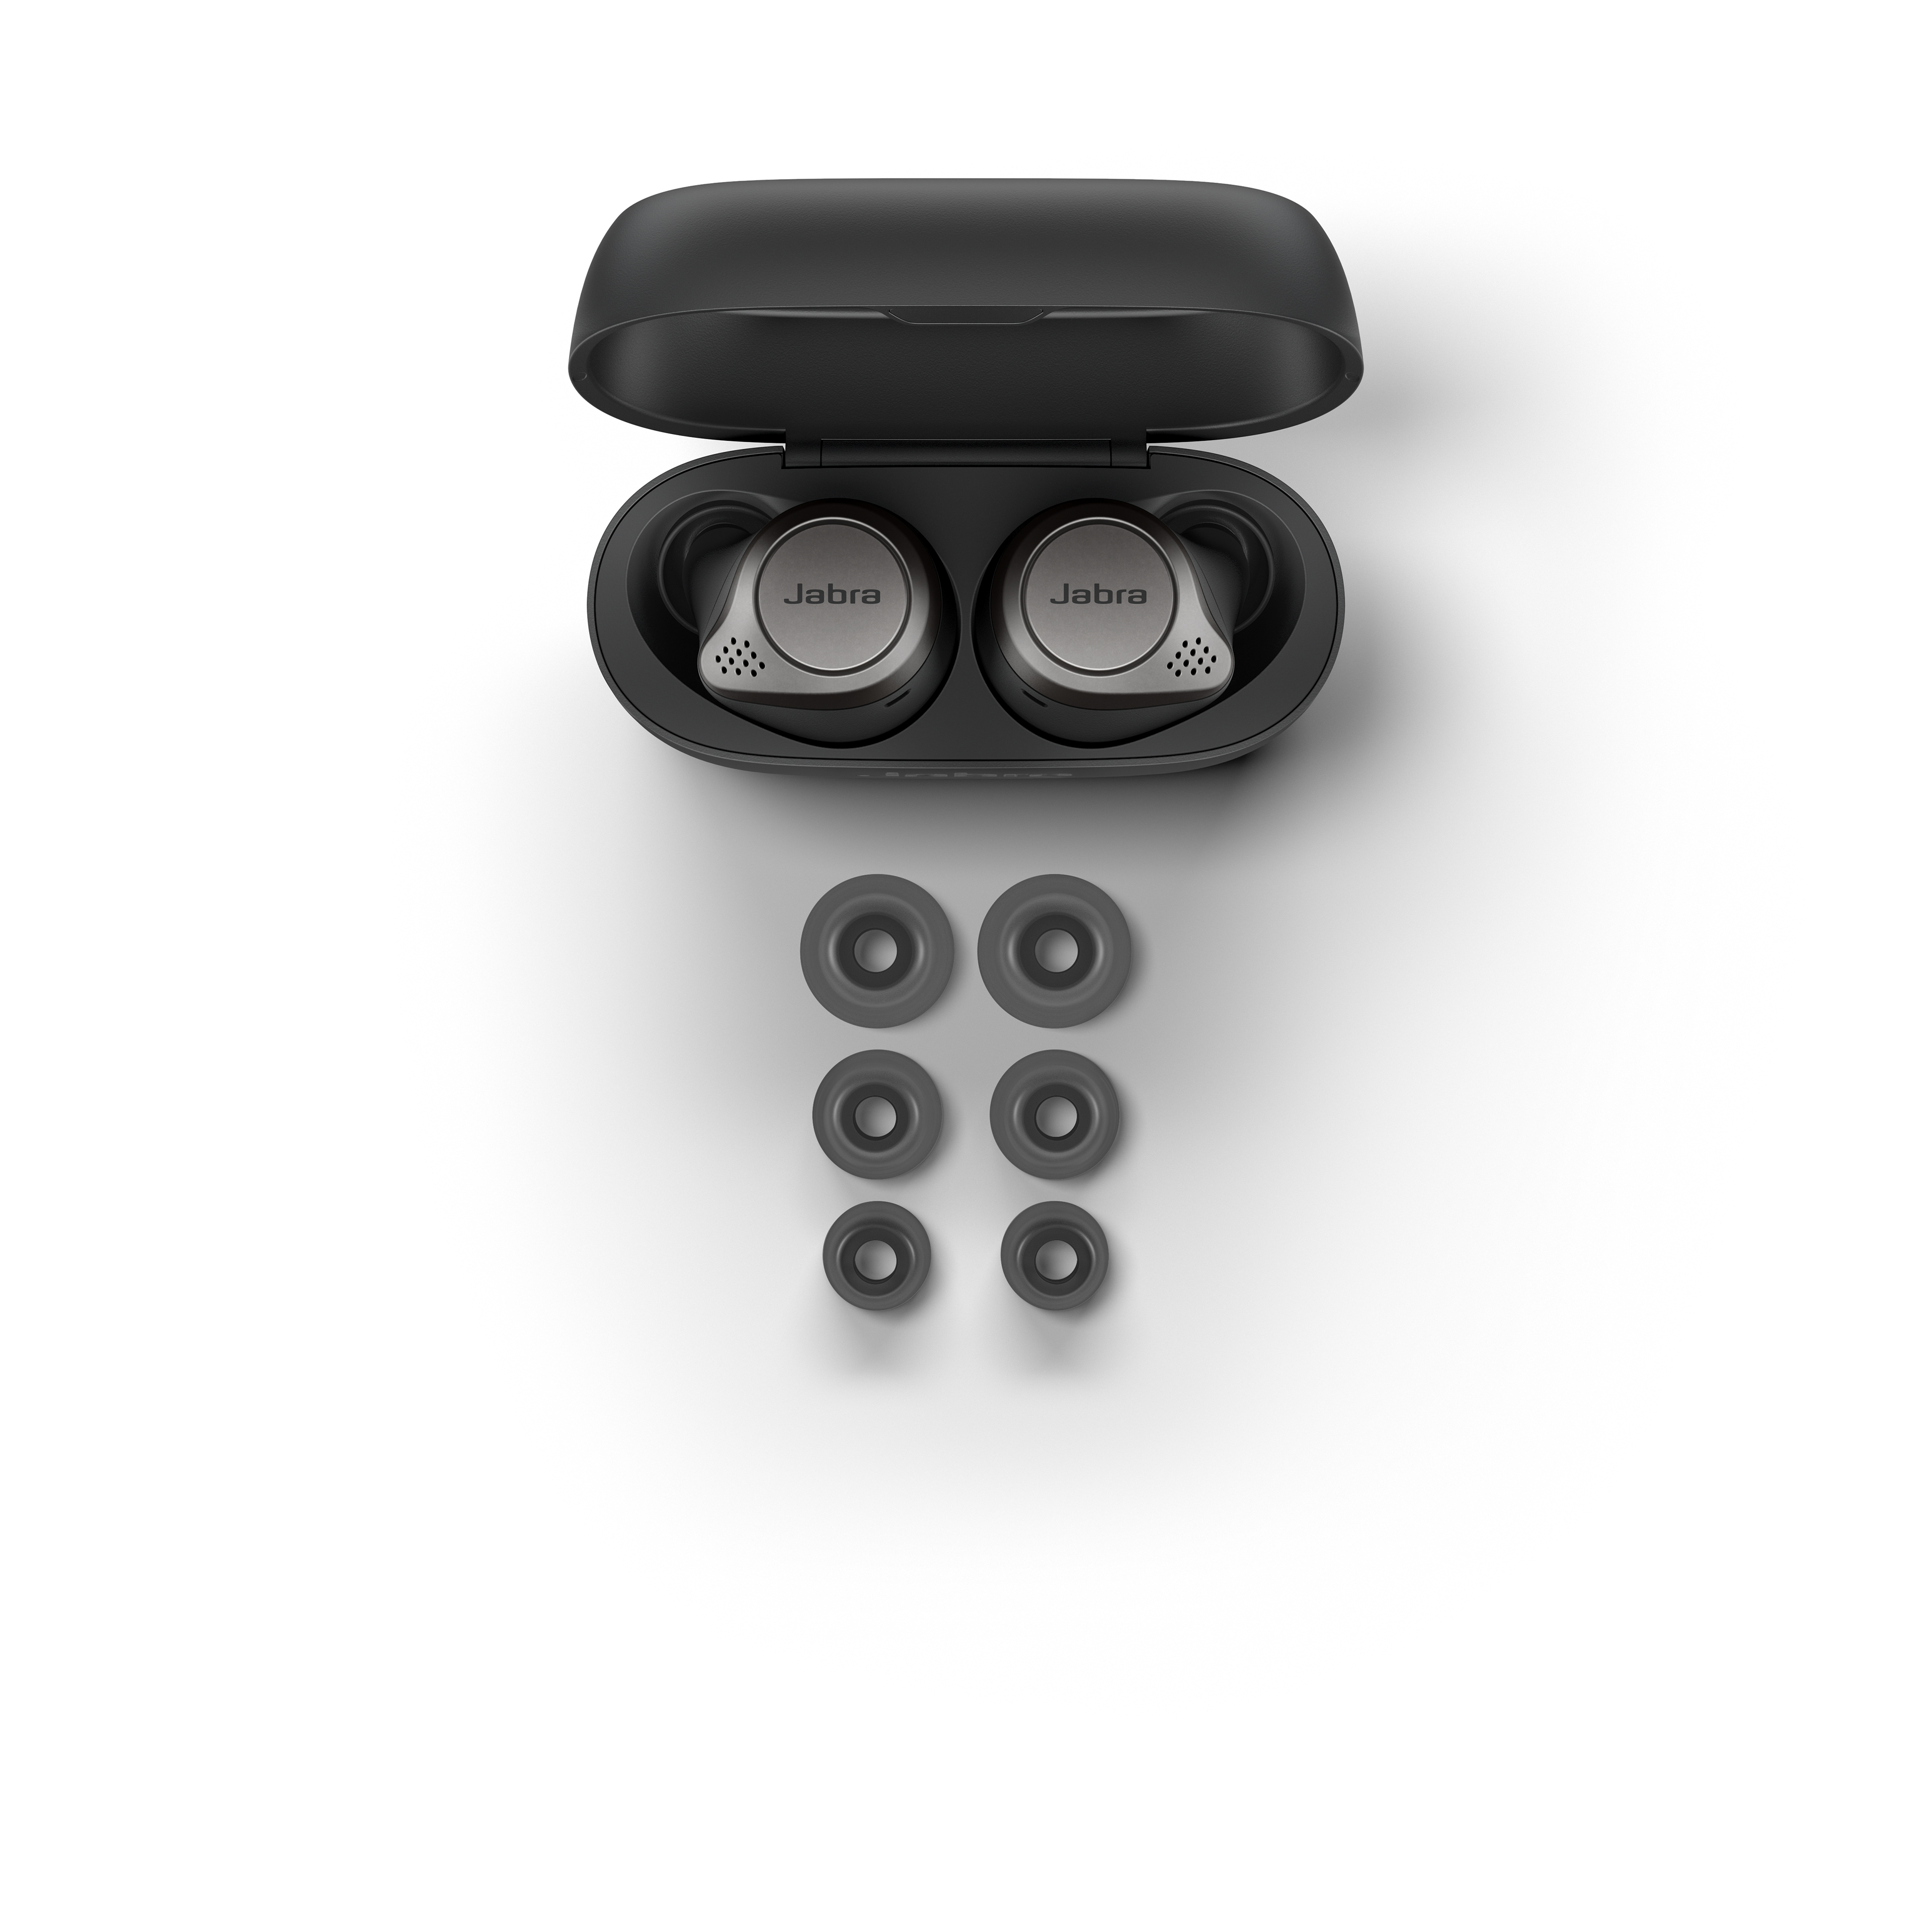 Jabra-Elite-75t-Voice-Assistant-True-Wireless-earbuds-Manufacturer-Refurbished thumbnail 20